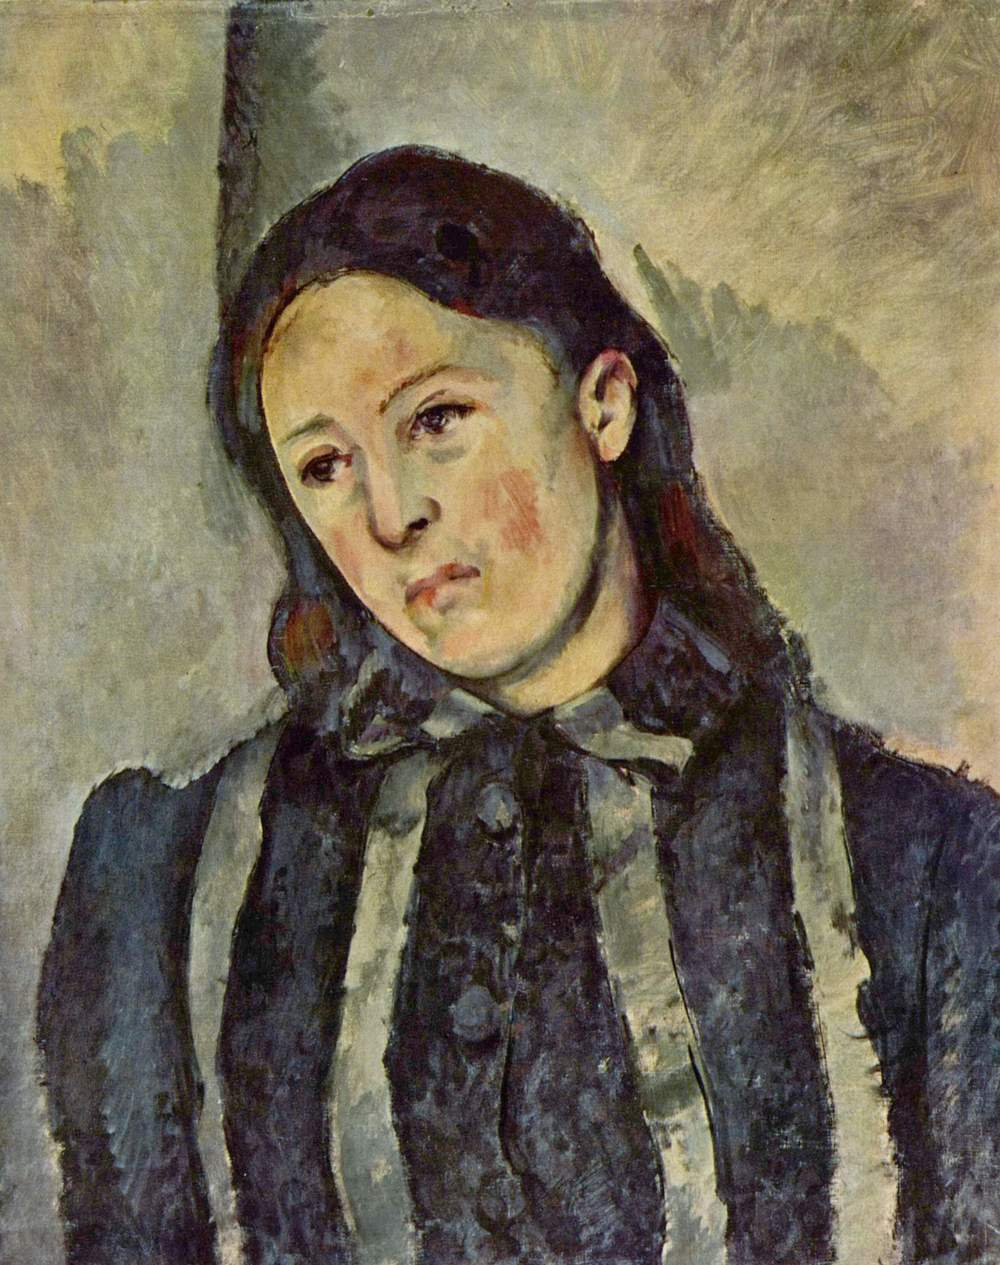 Paul Cézanne, Portrait of Madame Cézanne with Loosened Hair, 1883-1887, Philadelphia Museum of Art.